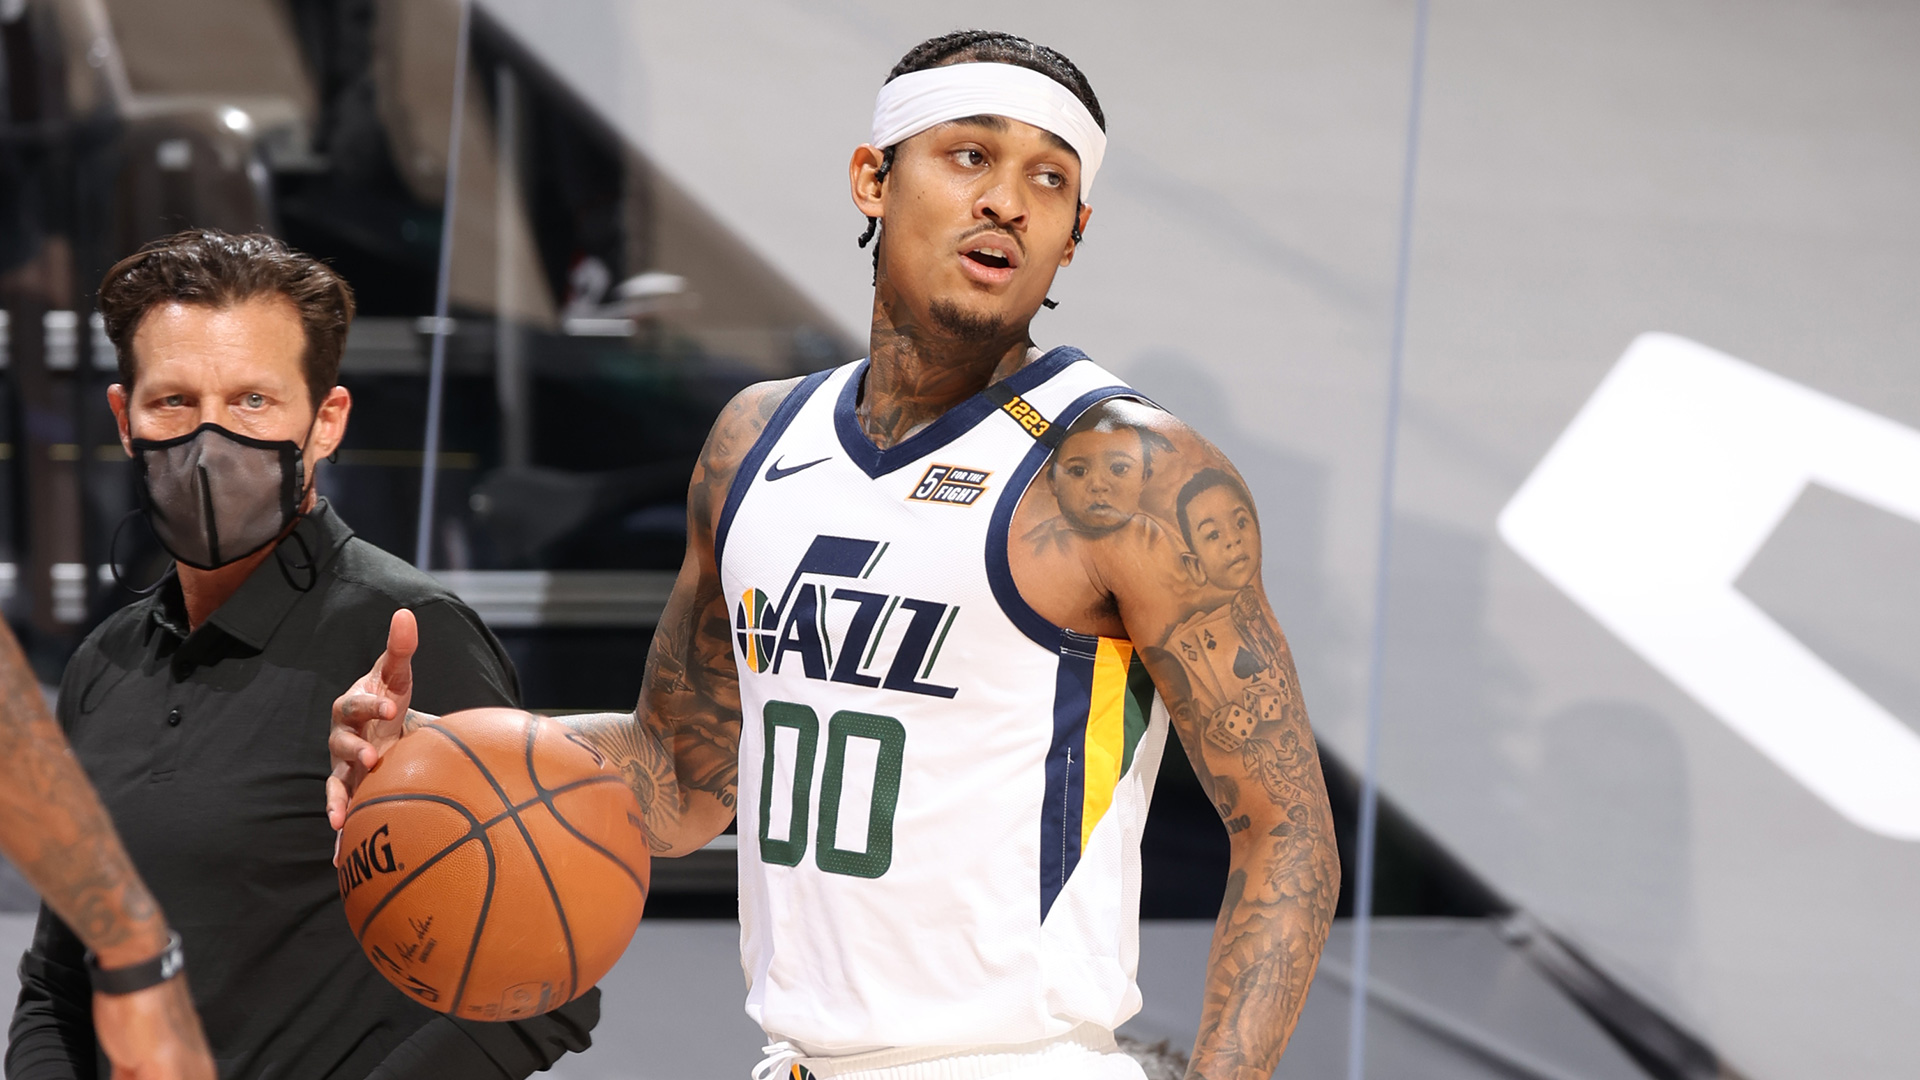 Jazz guard Jordan Clarkson fined $25,000 for making contact with official   NBA.com